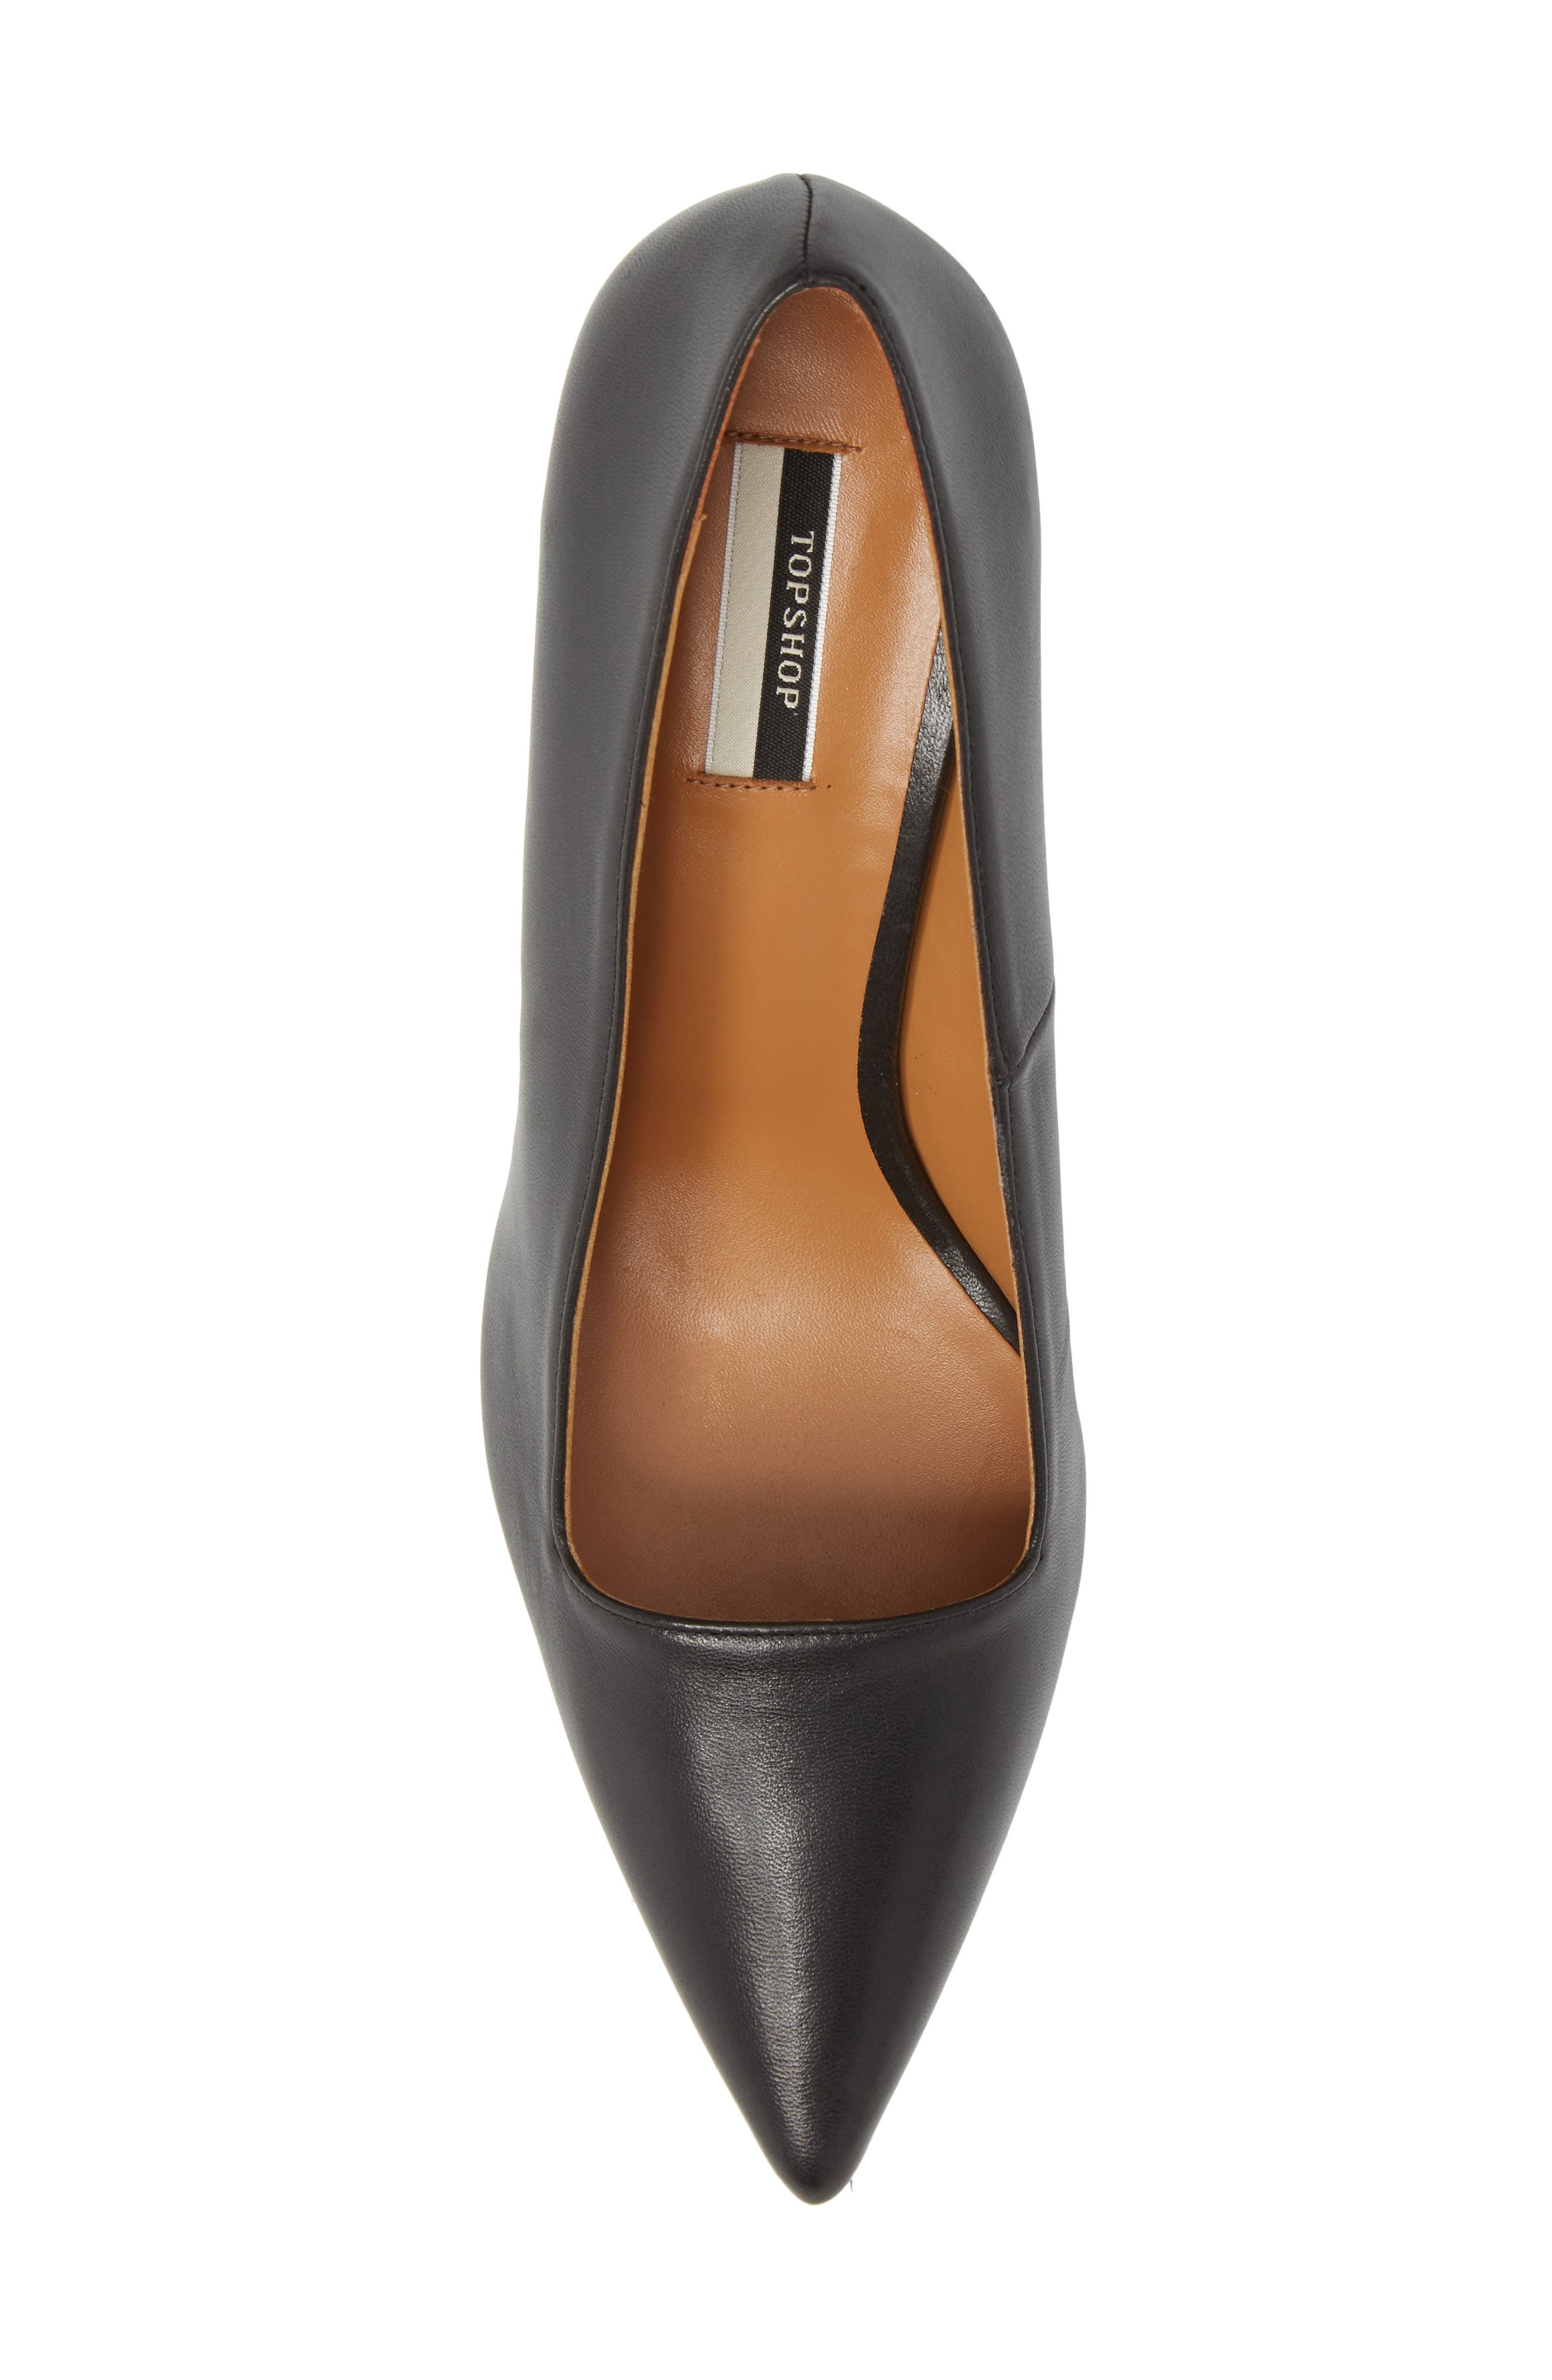 Jubilee Pointy Toe Pump,                             Alternate thumbnail 5, color,                             Black Multi